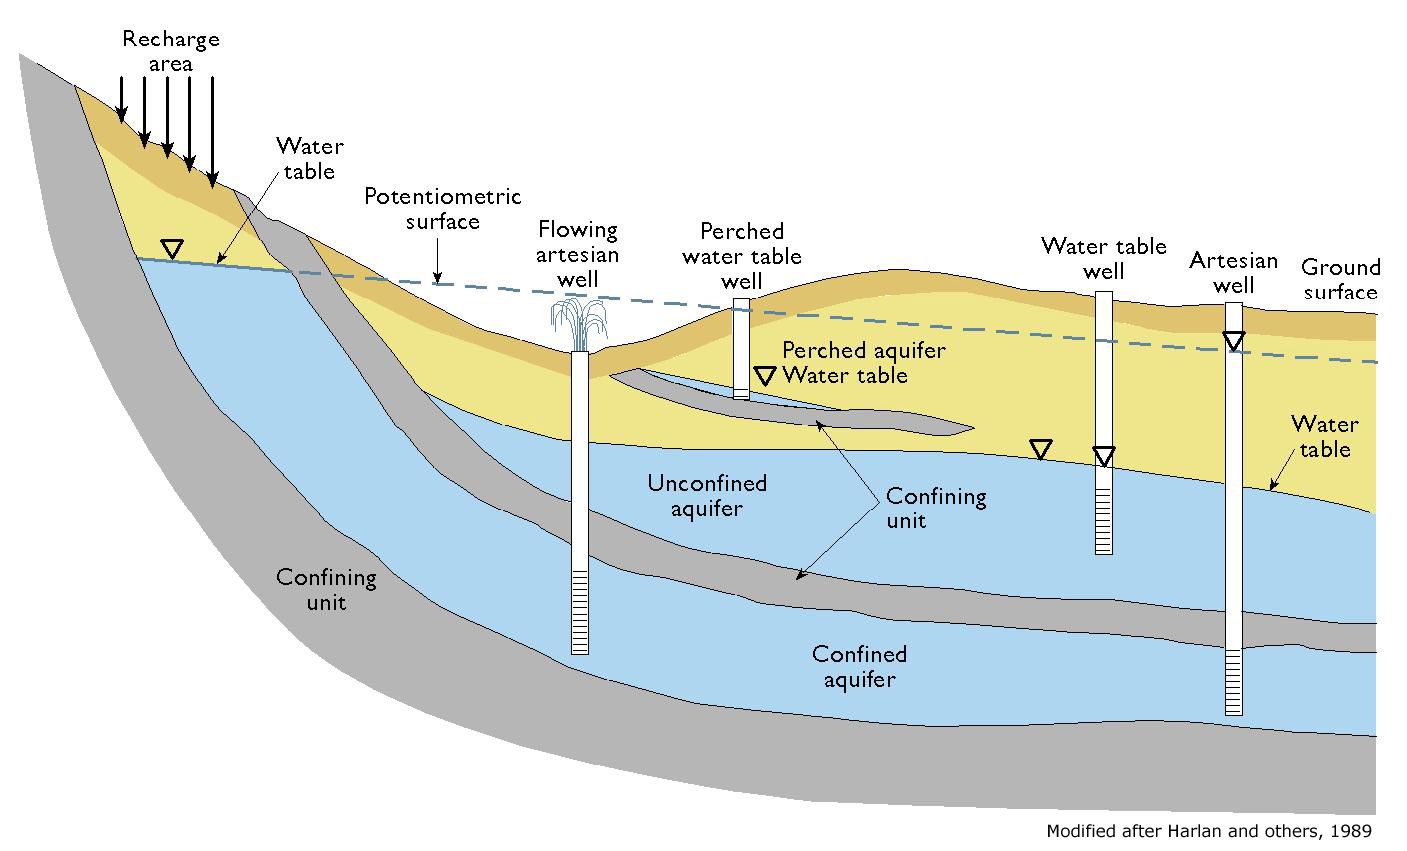 hight resolution of source hanay at mediawiki commons schematic cross section of aquifer types